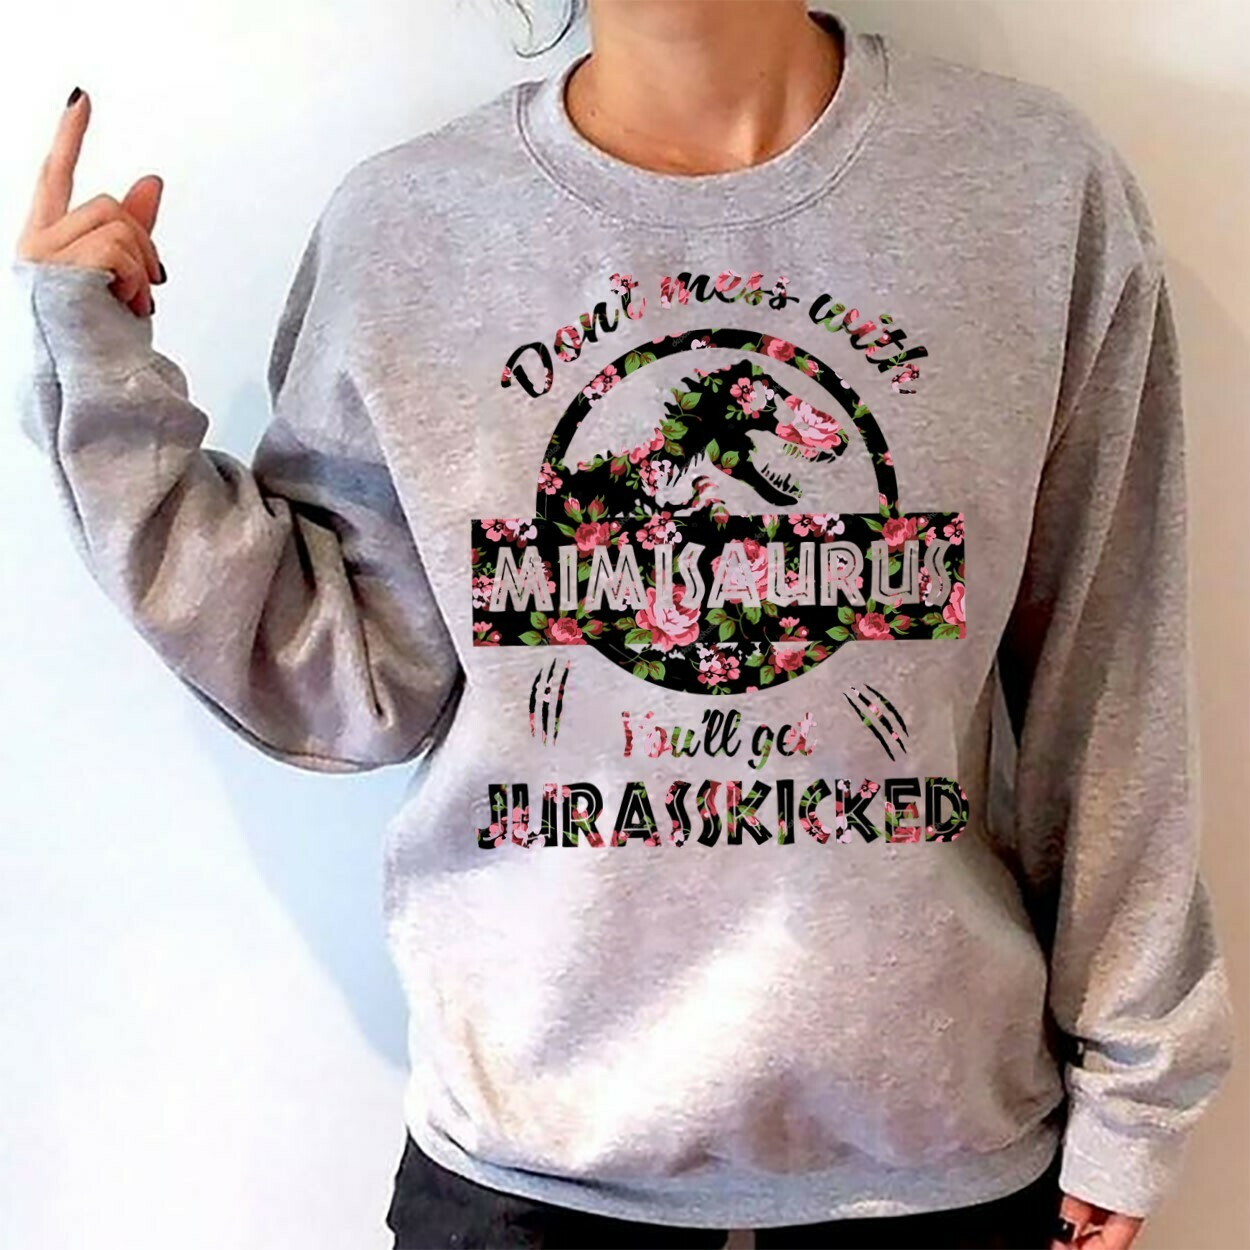 Don't mess with mimisaurus you'll get jurasskicked mother's day shirt T-Shirt Hoodie Sweatshirt Sweater Tee Kids Youth Gifts Jolly Family Gifts